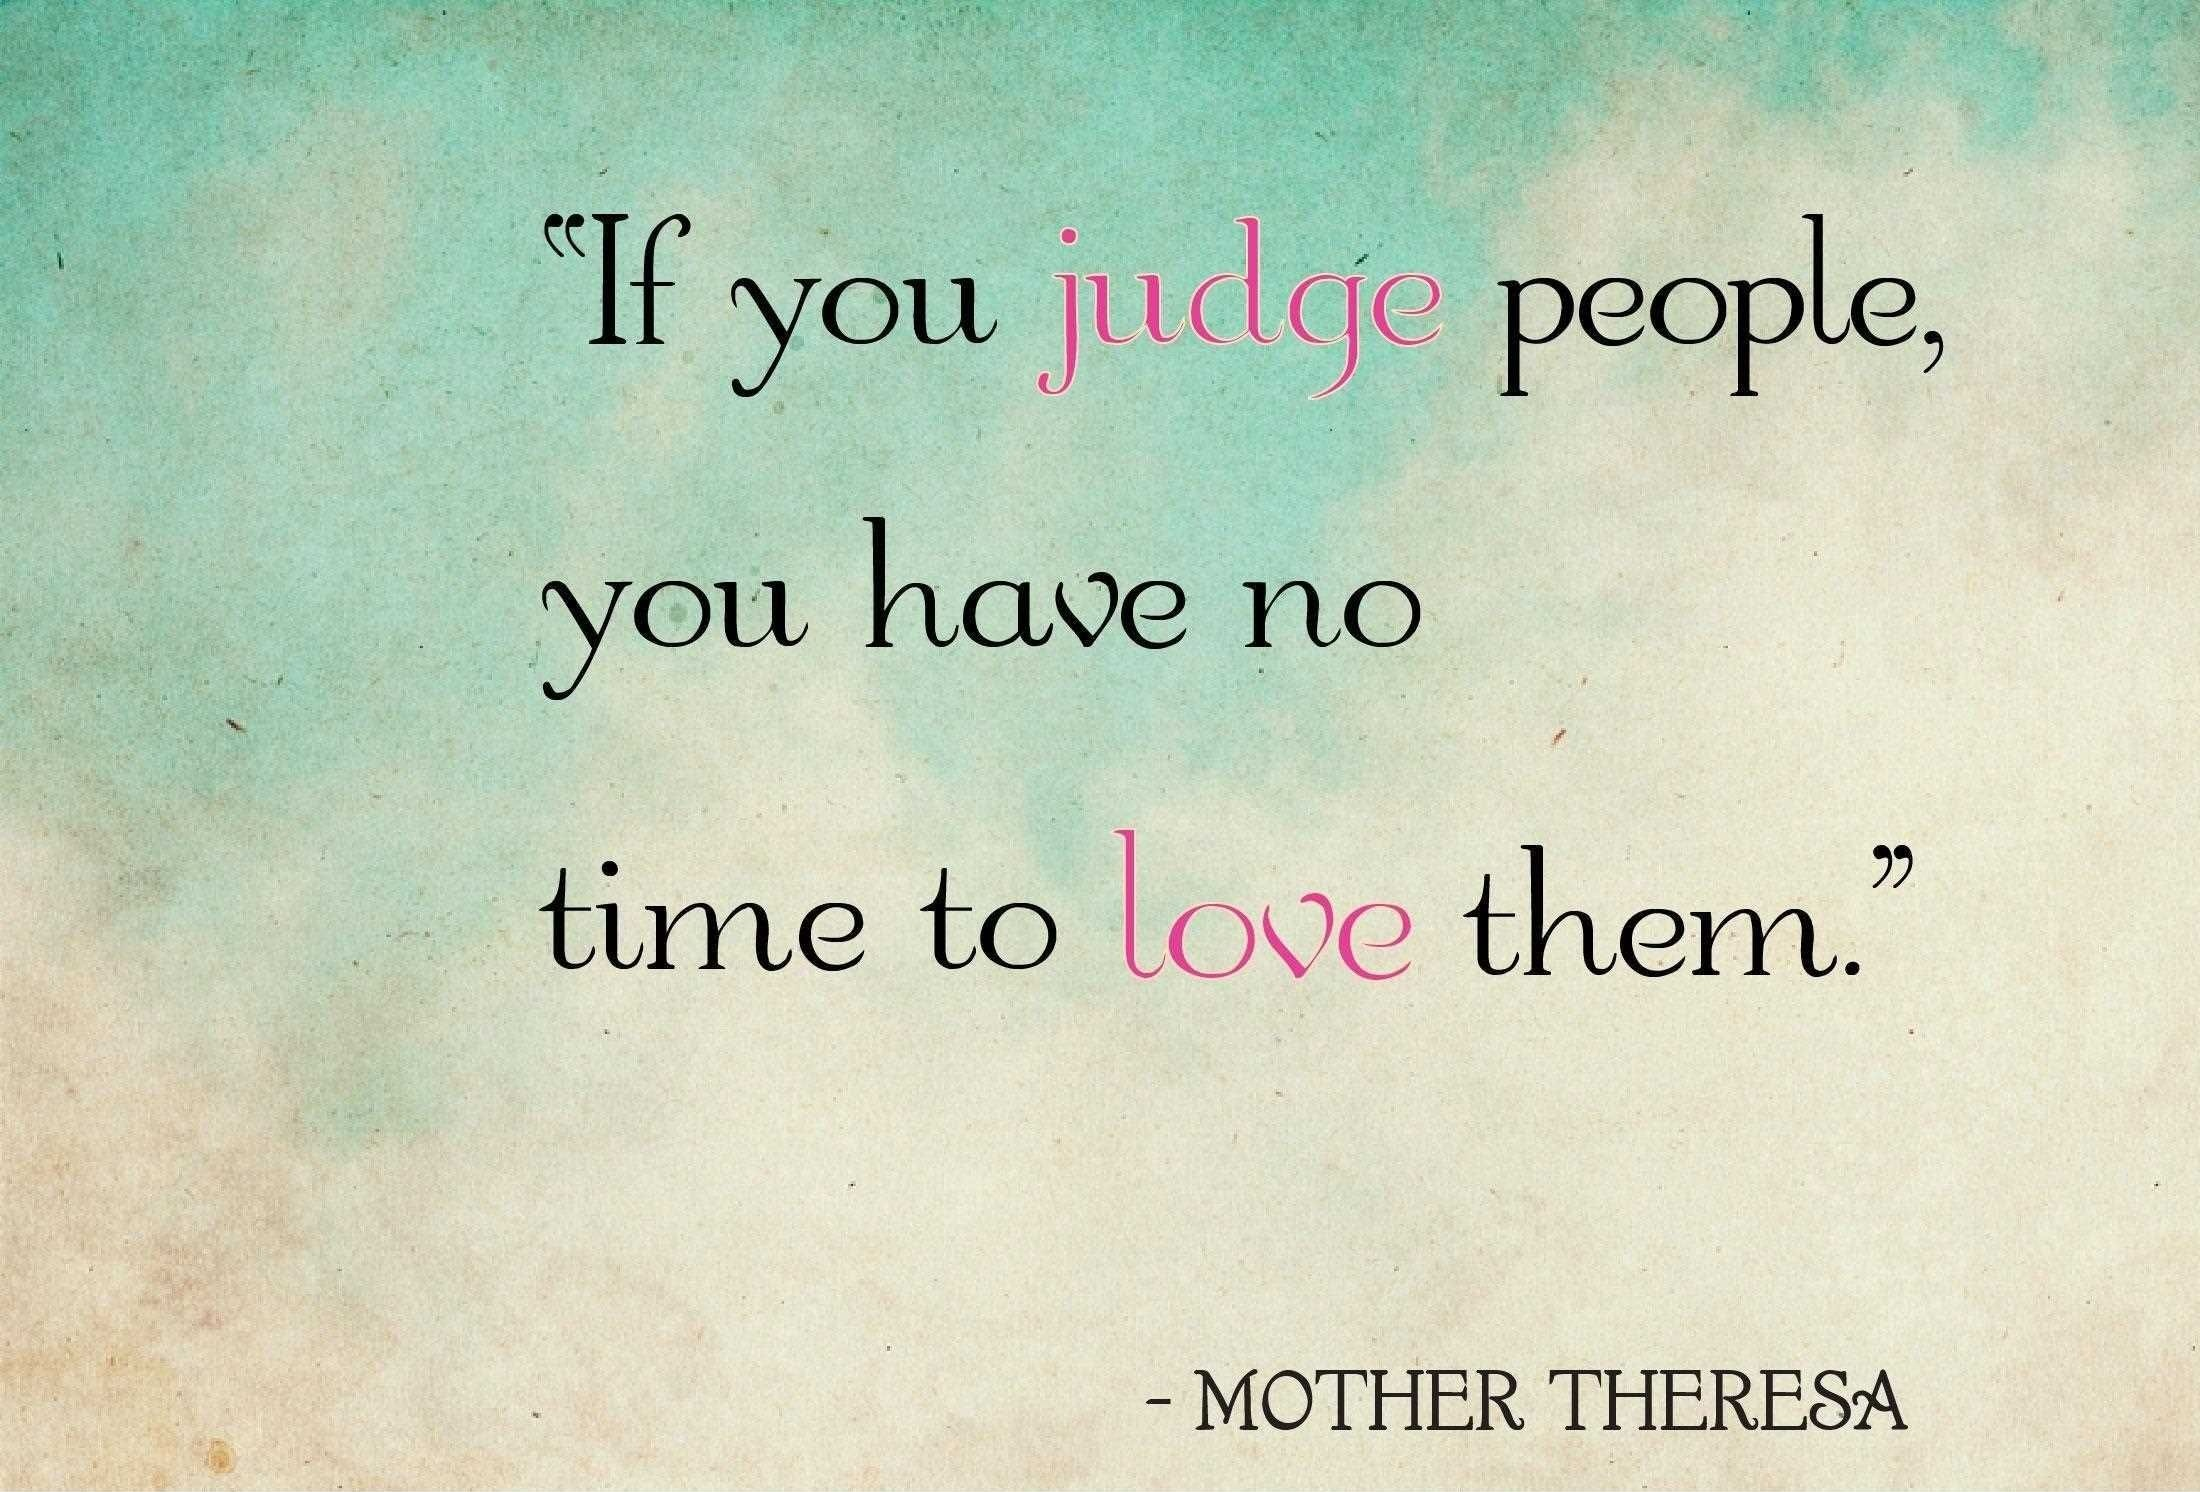 If you judge people, you have no time to love them. - Love Theresa.